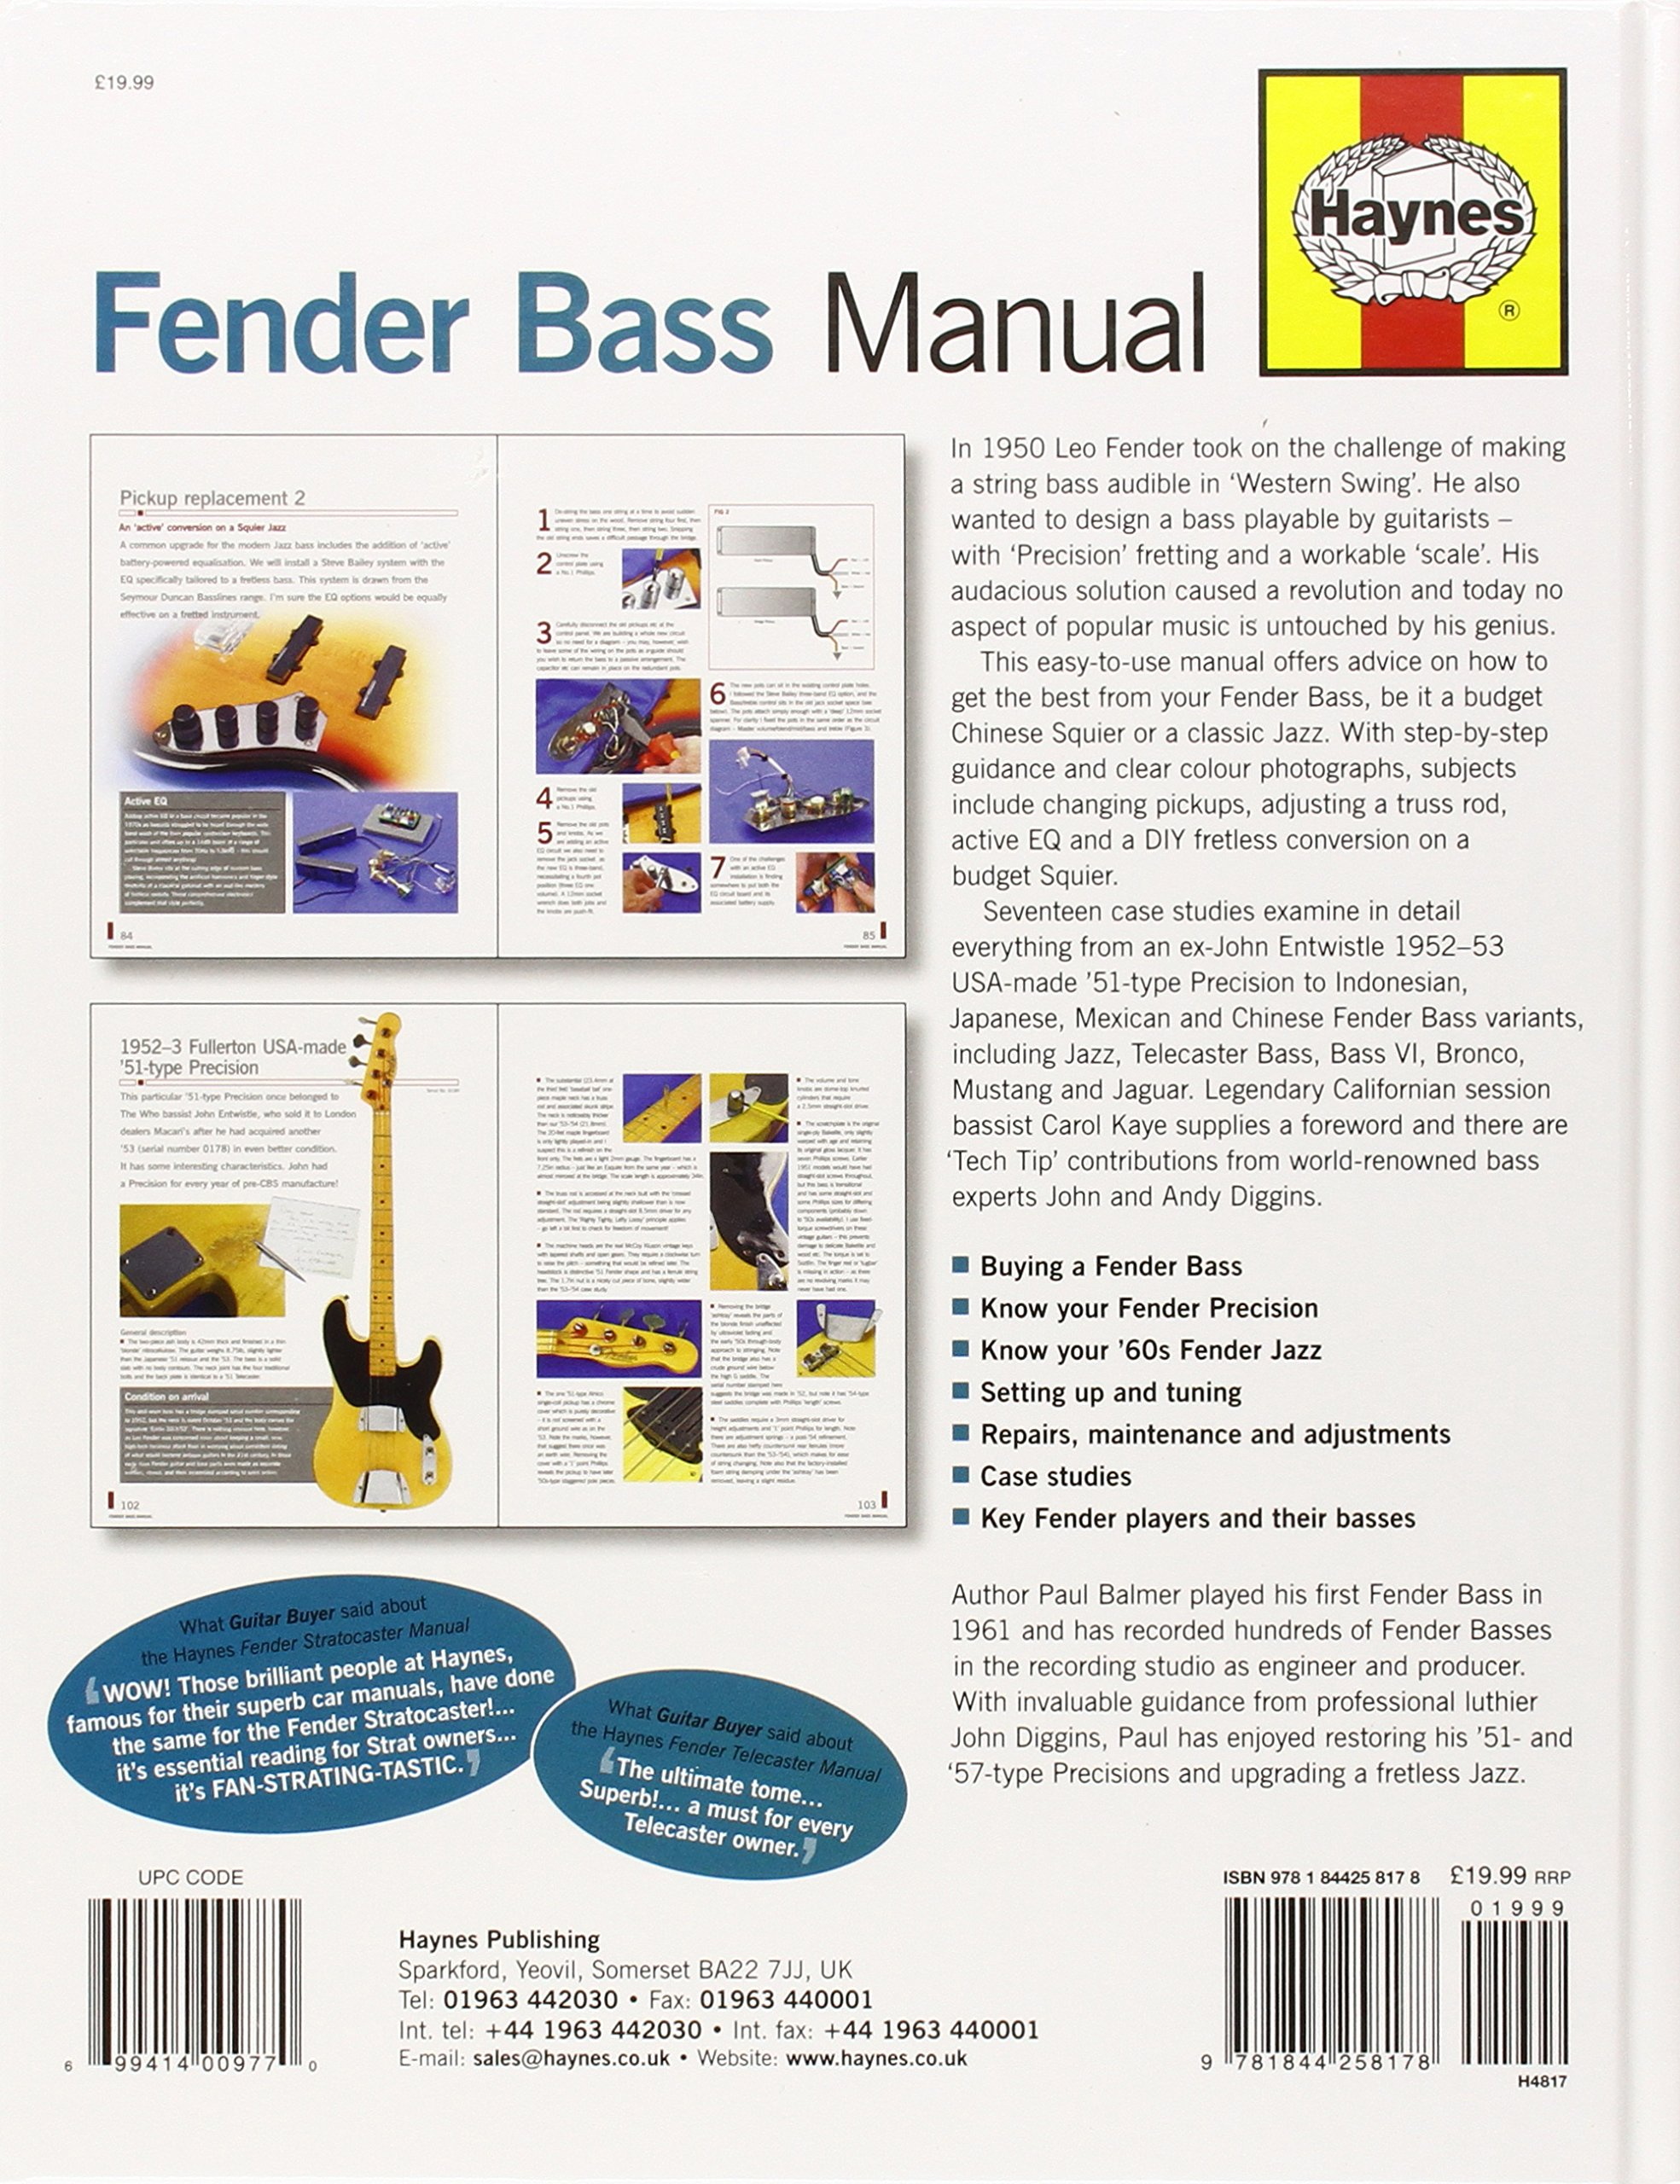 Fender Bass Manual: How to buy, set up and maintain the Fender Bass ...